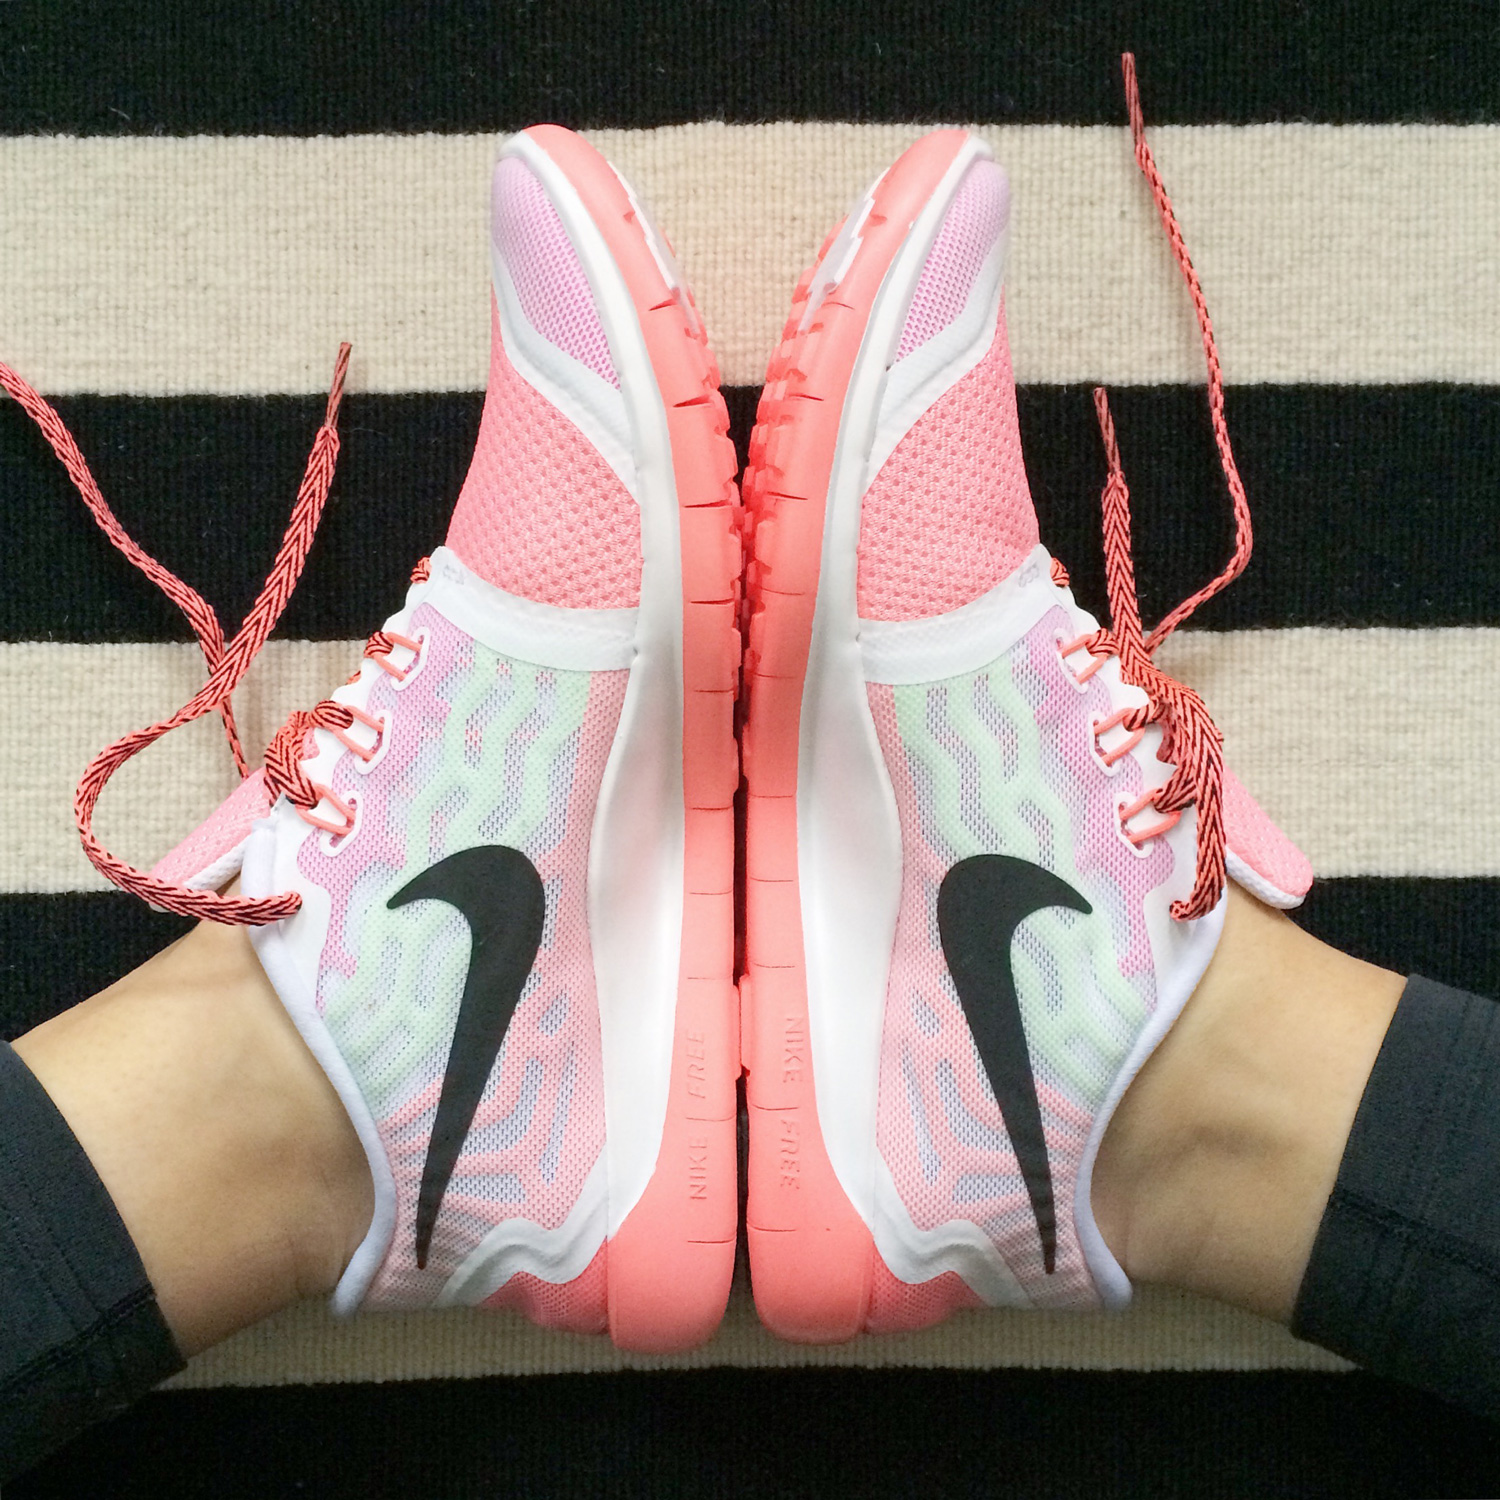 New-Nikes-in-size-Young-Adult.jpg